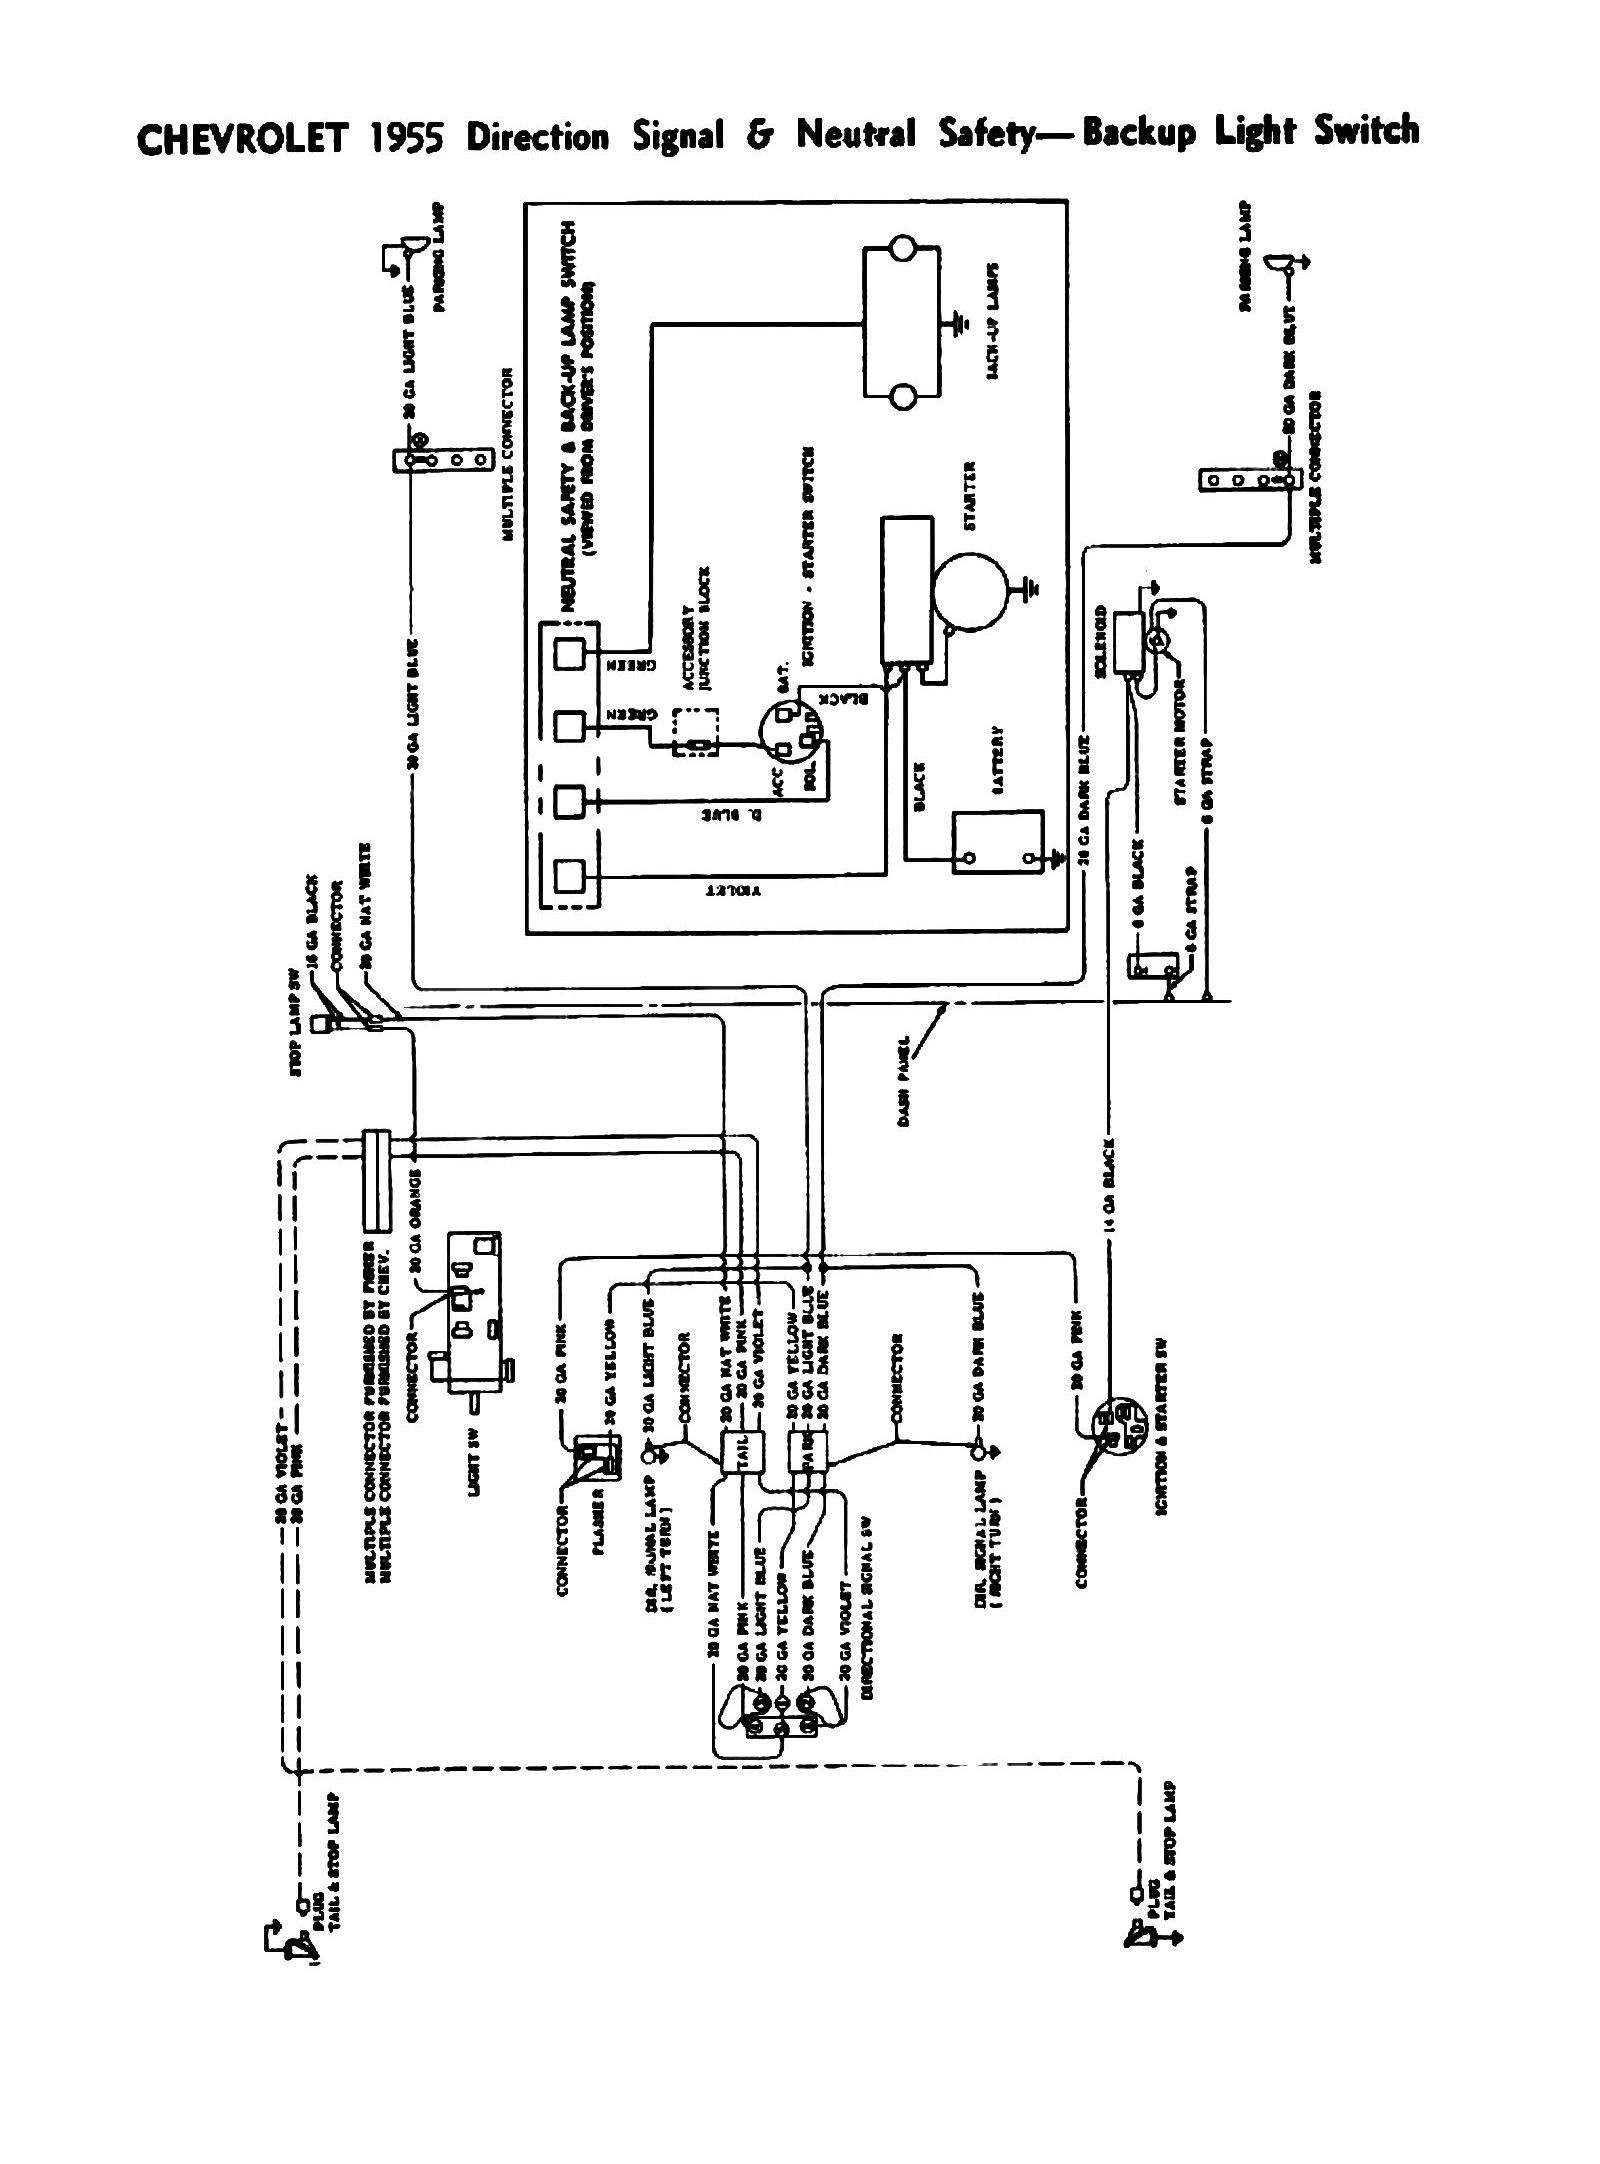 mtd ignition switch wiring diagram Collection-Wiring Diagram for Mtd Ignition Switch Valid 69 Awesome Wire Diagram for Installing A solenoid Bobcat 20-c